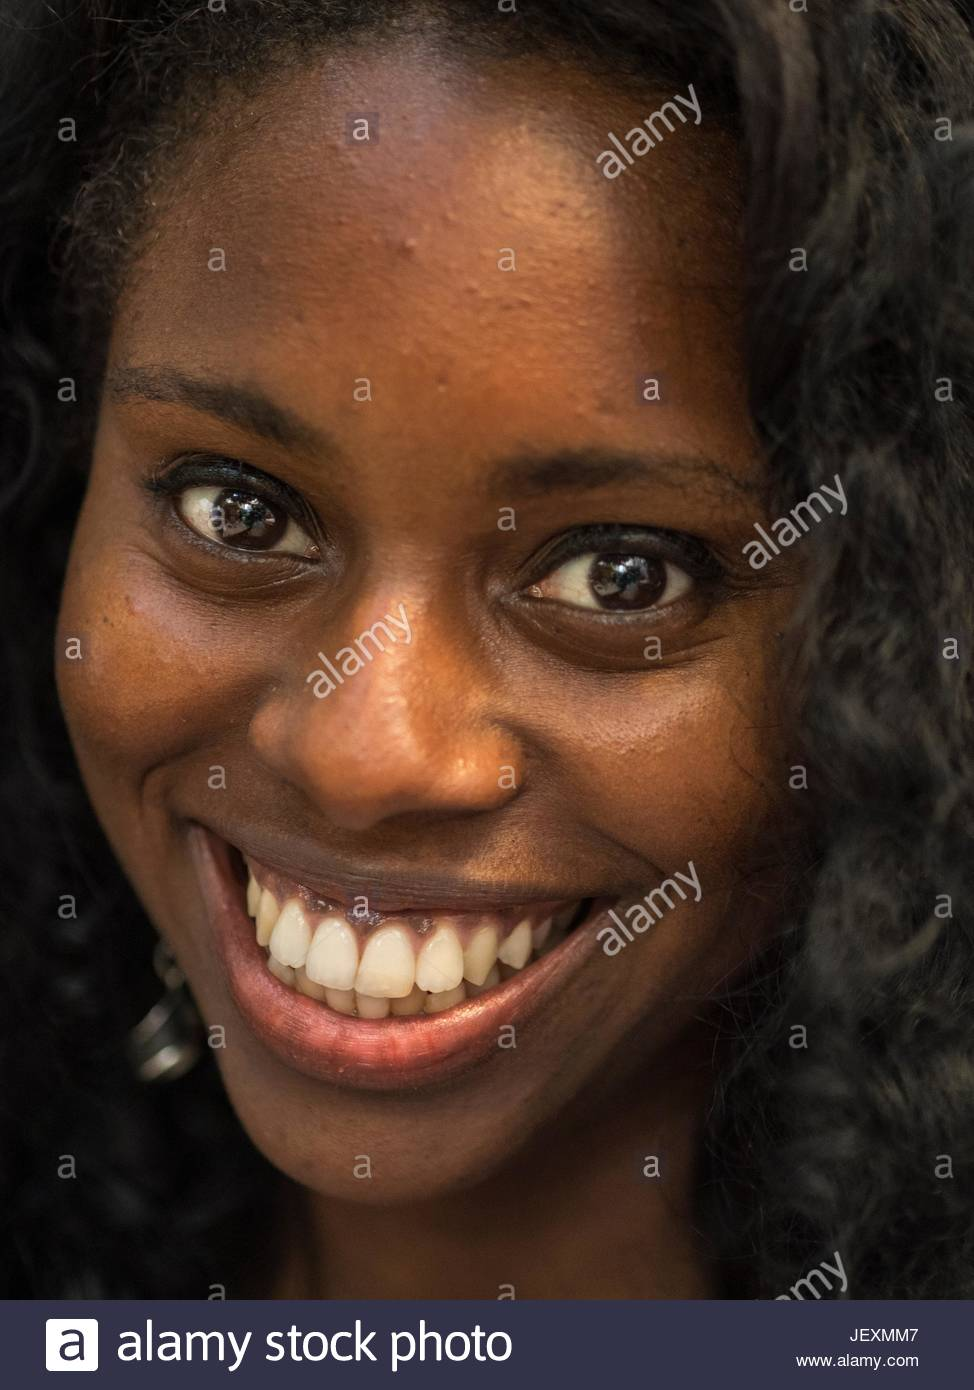 Portrait of a young woman in La Habana Vieja district. - Stock Image